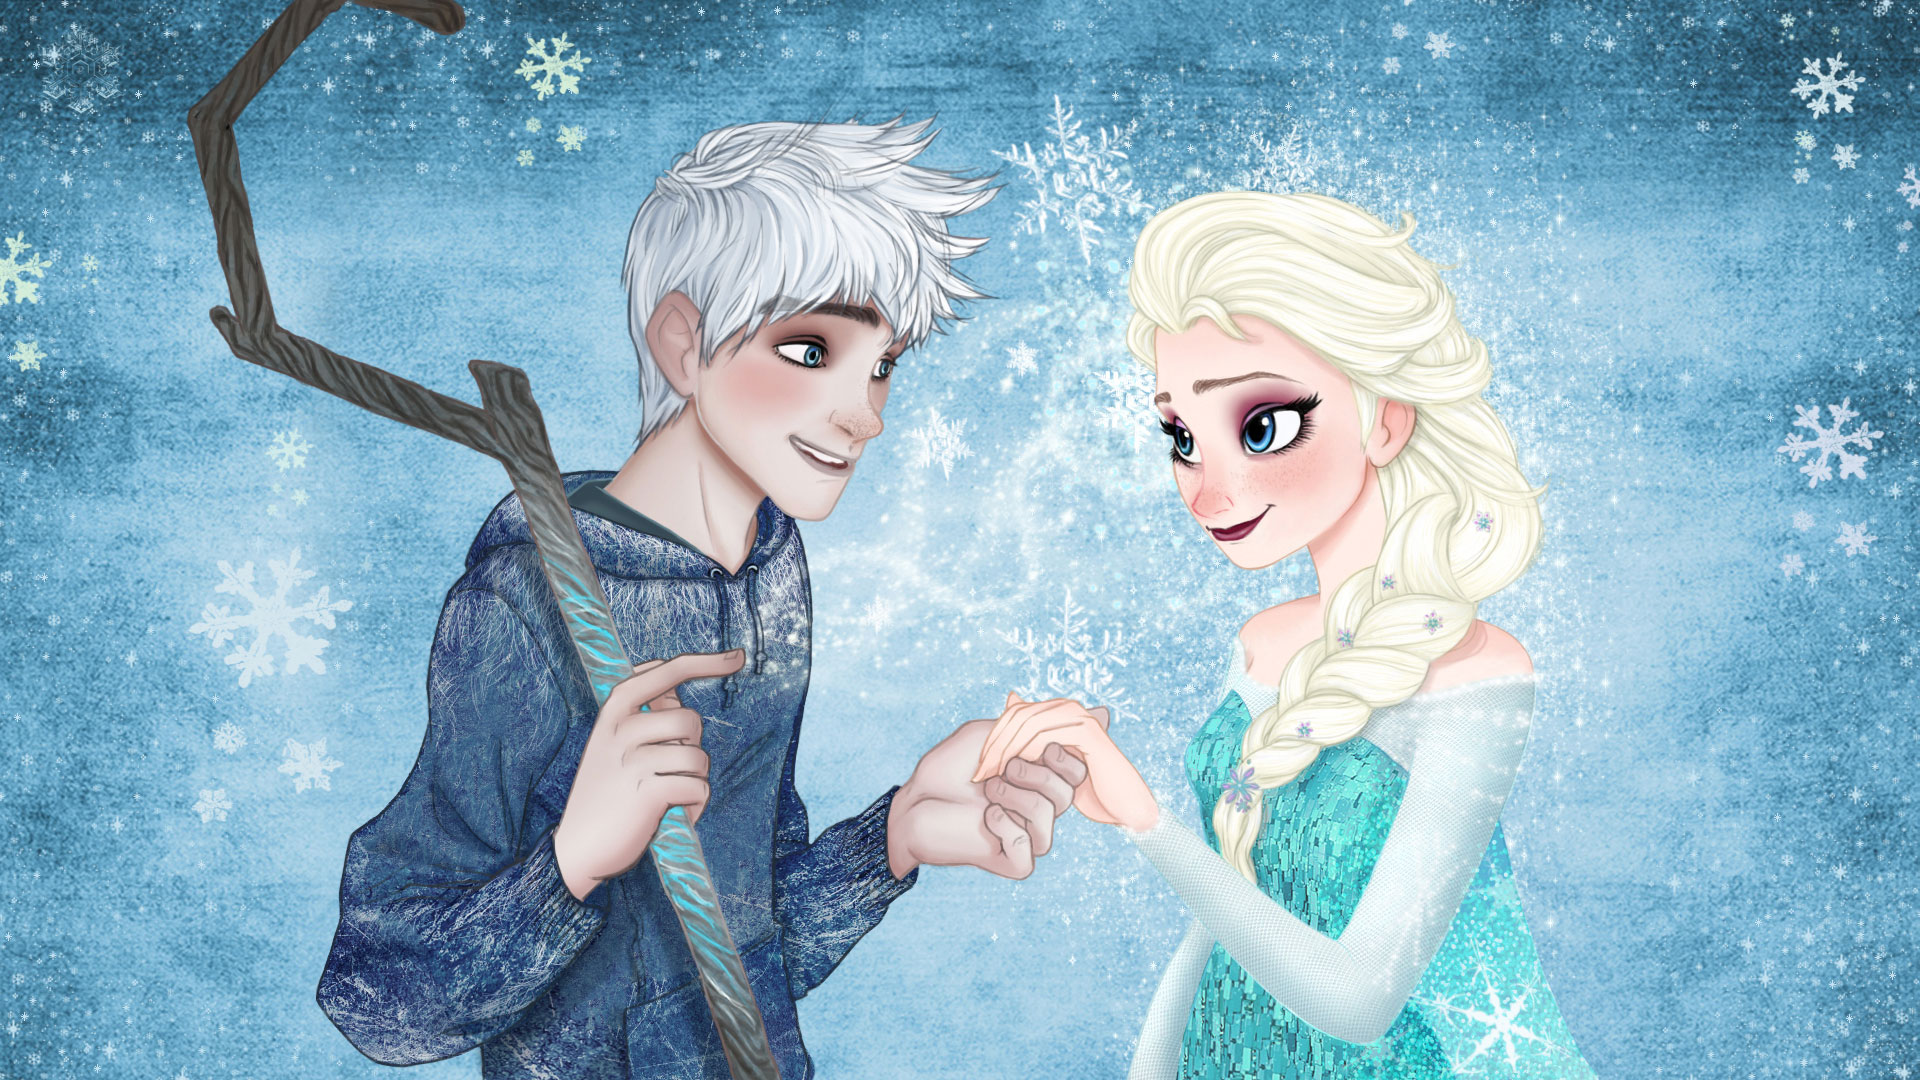 Name Jack Frost Queen Elsa Resolution